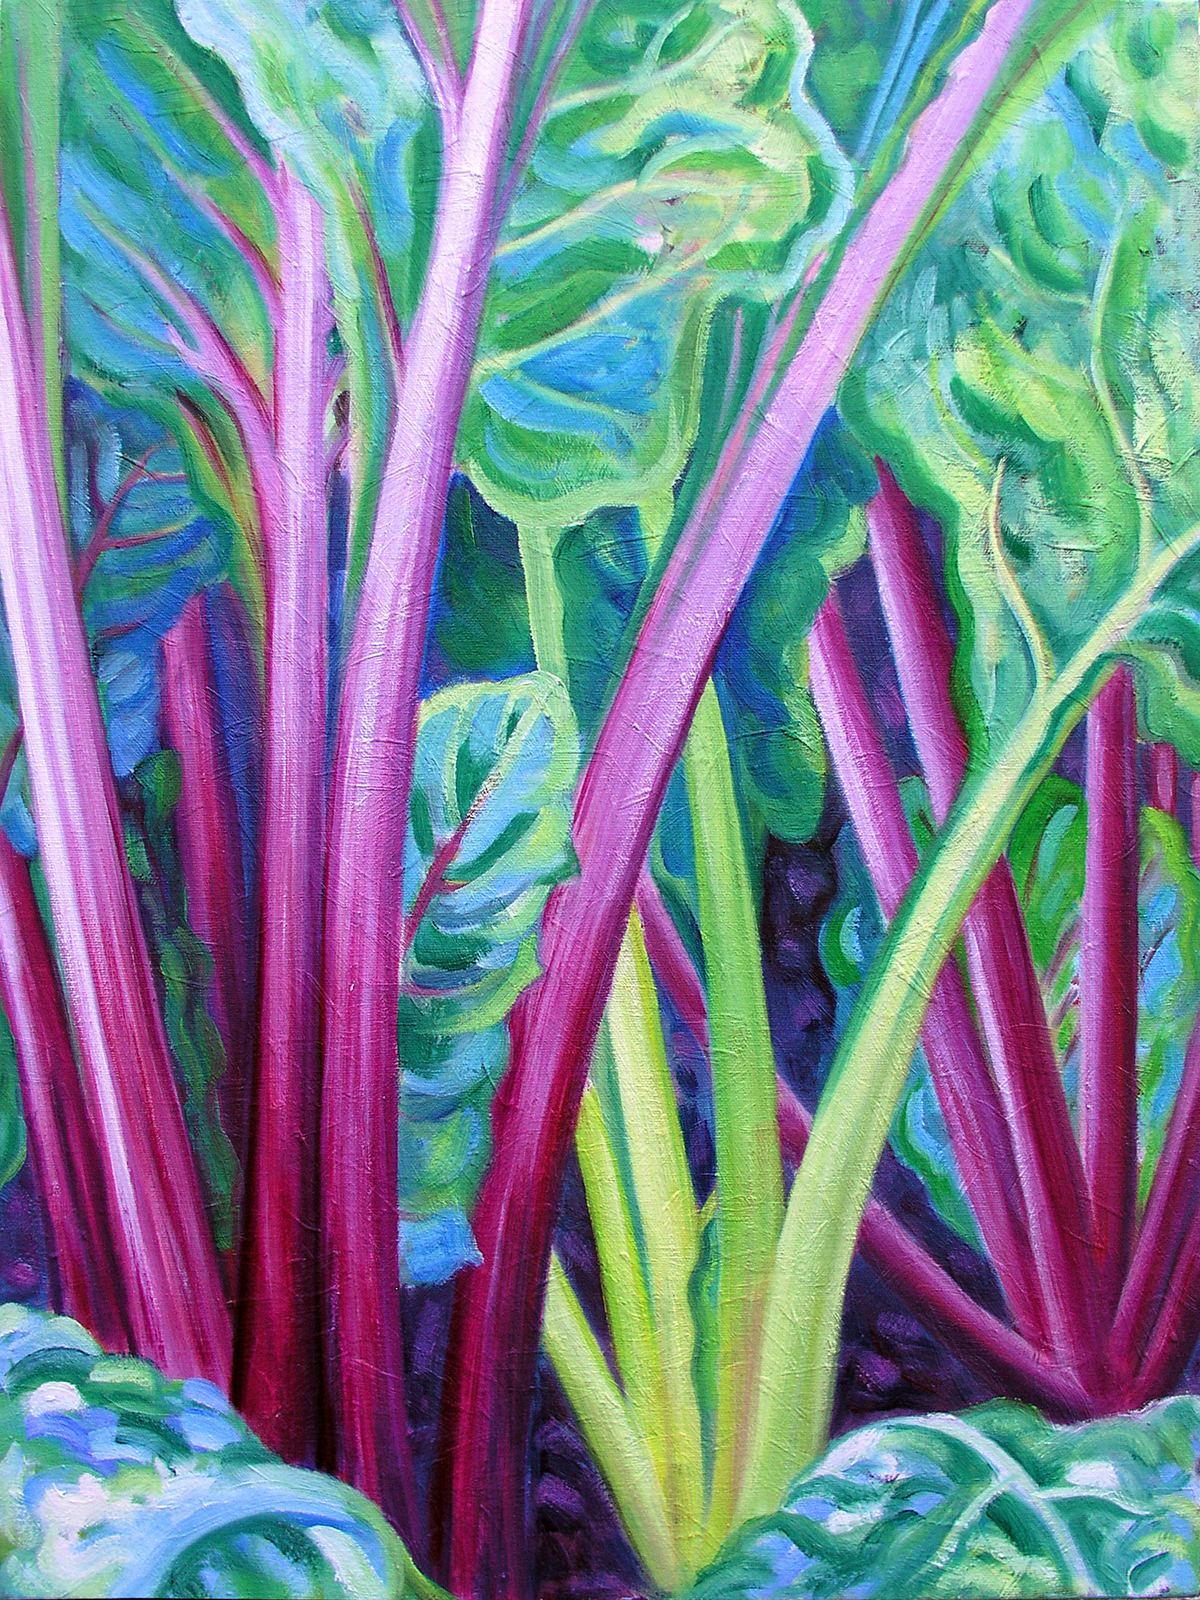 "Beta vulgaris var. cicla, 'Bright Lights', 2016 Marion-Lea Jamieson Oil on canvas 24"" h x 18"" w"